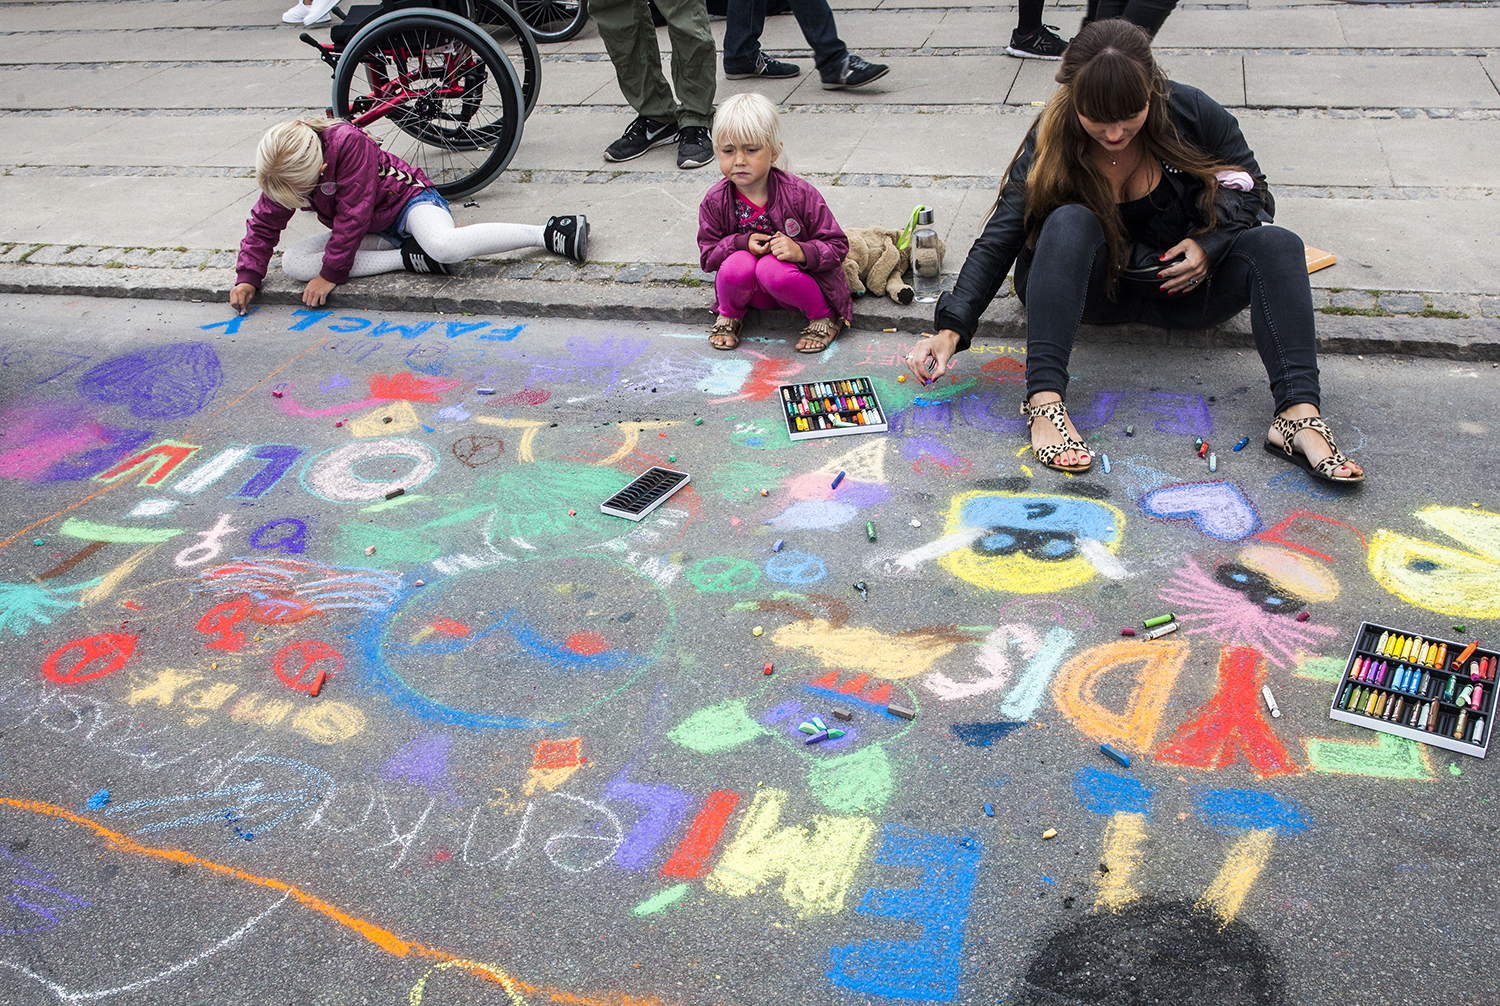 chalk_painting_day_18-09-16_helenalundquist_28